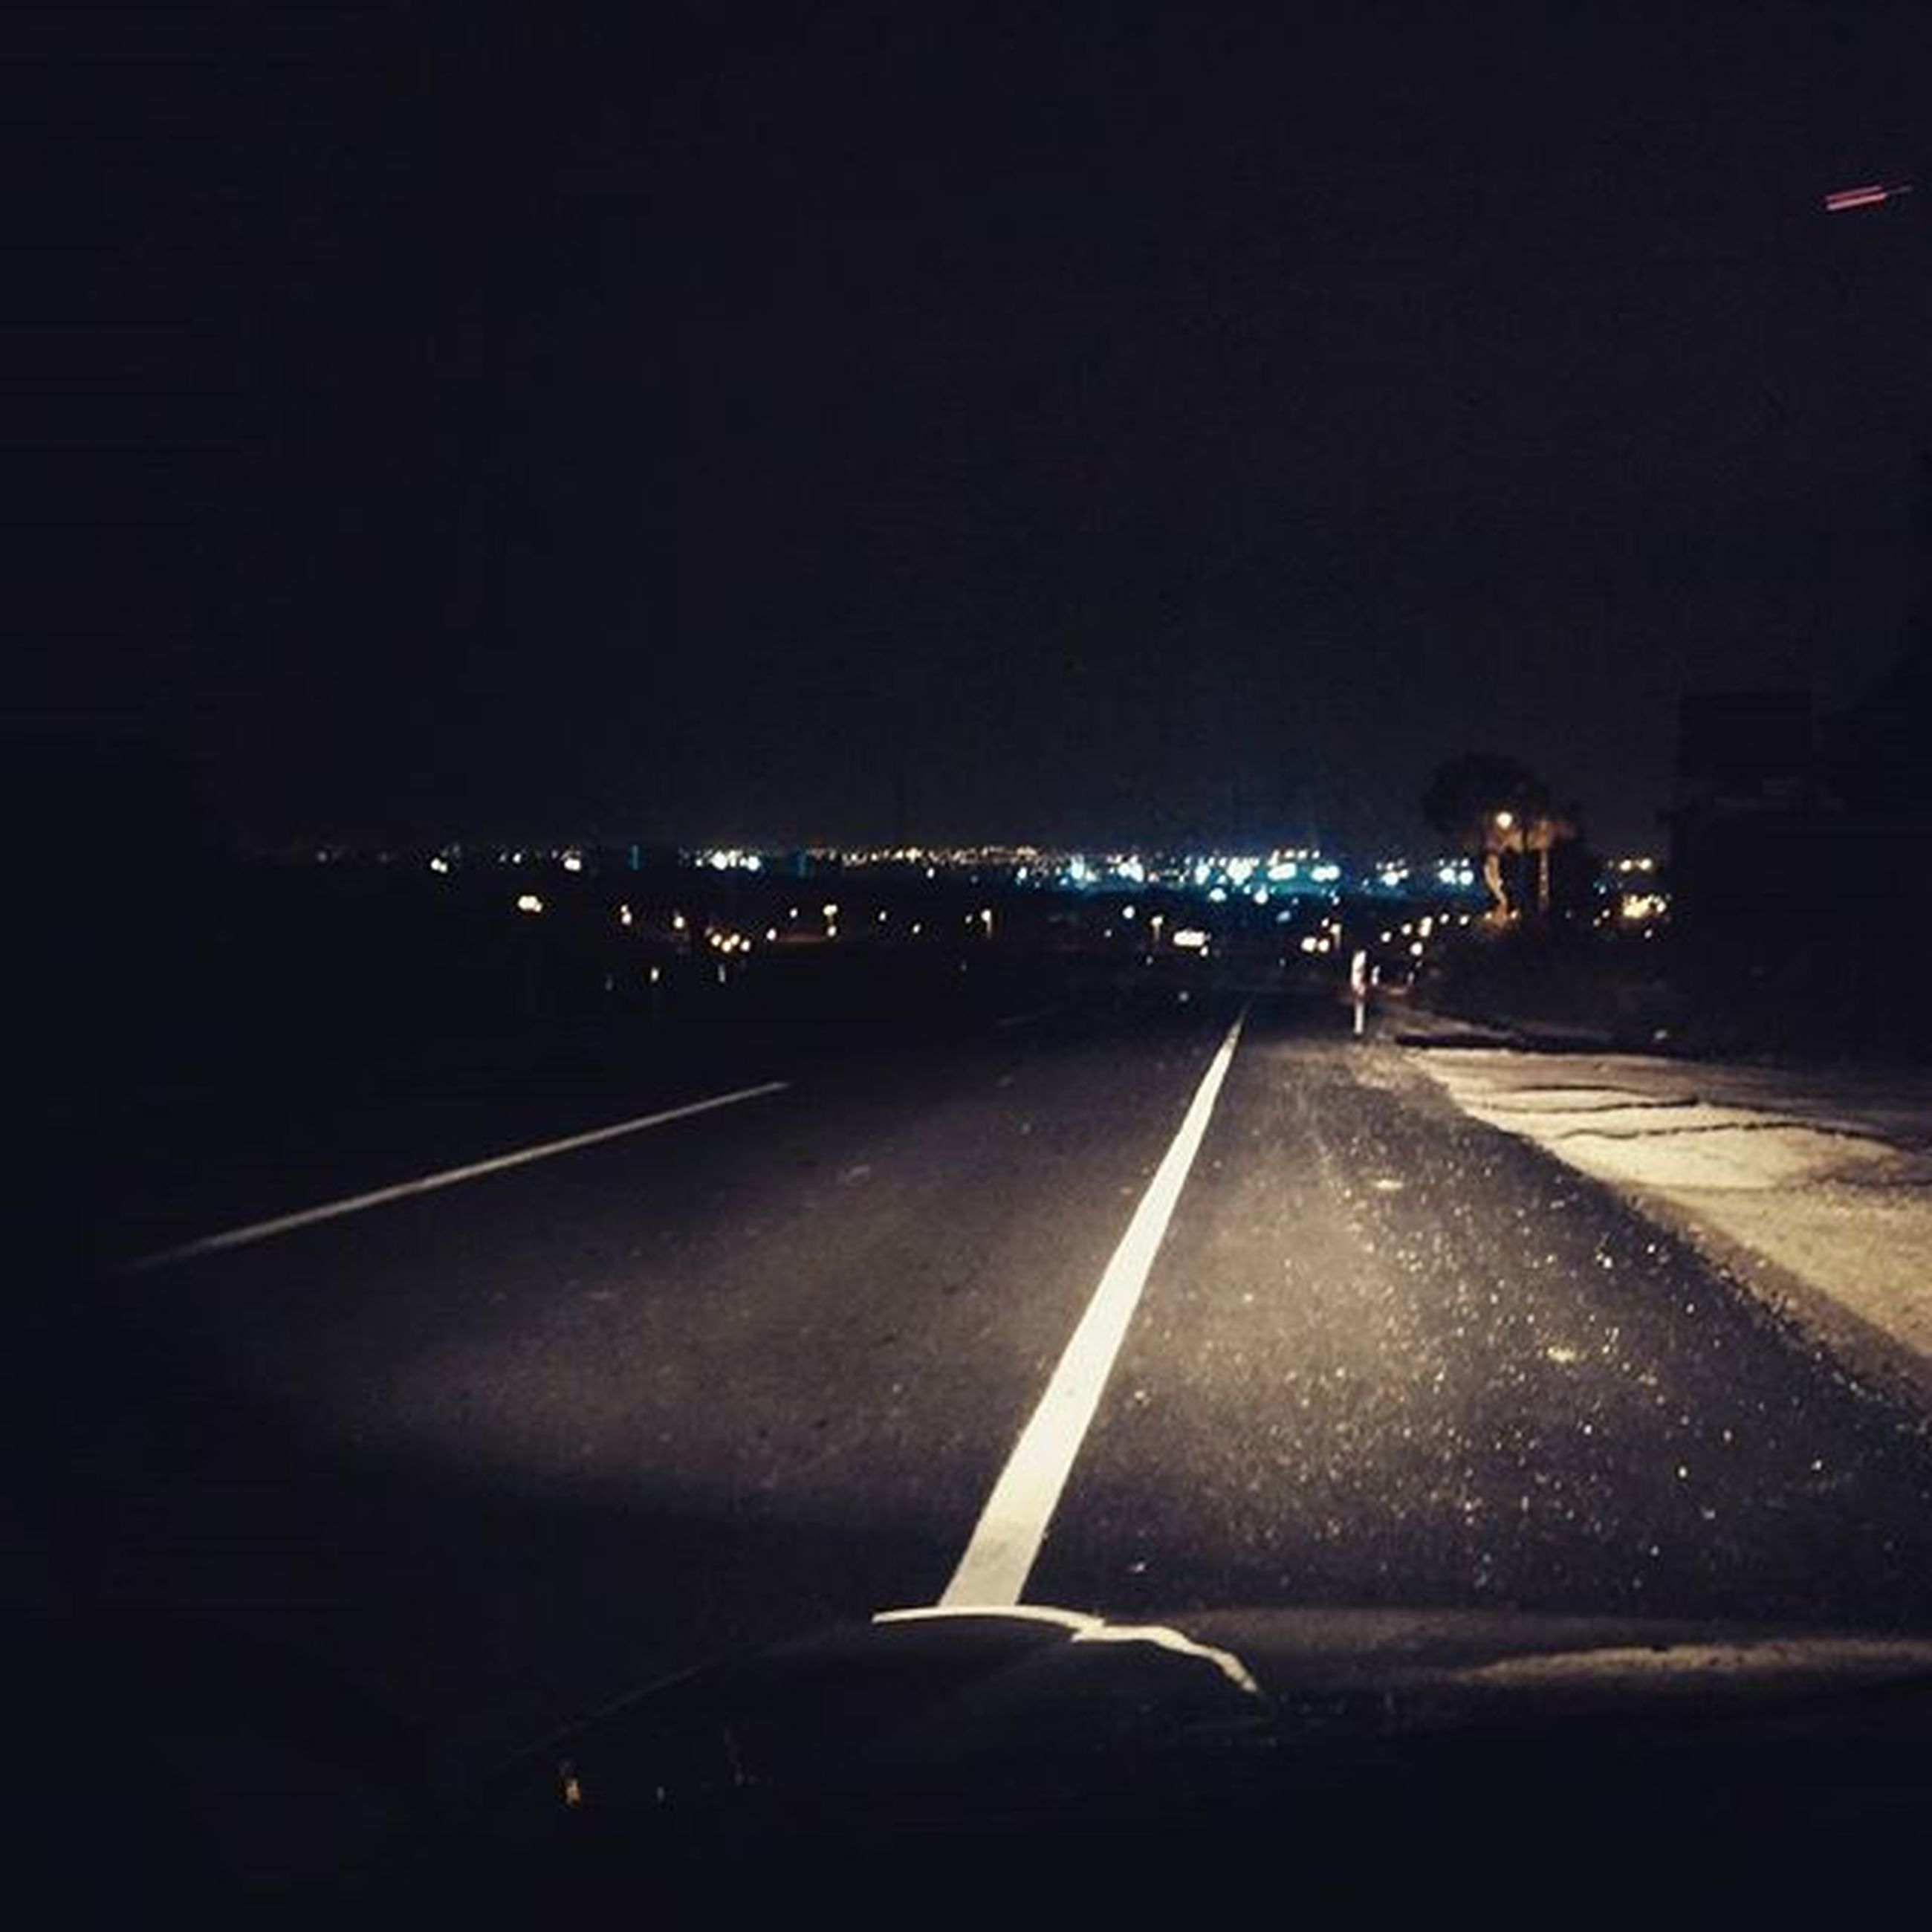 night, illuminated, transportation, road, road marking, the way forward, copy space, dark, diminishing perspective, mode of transport, lighting equipment, street, vanishing point, street light, car, empty, on the move, land vehicle, clear sky, travel